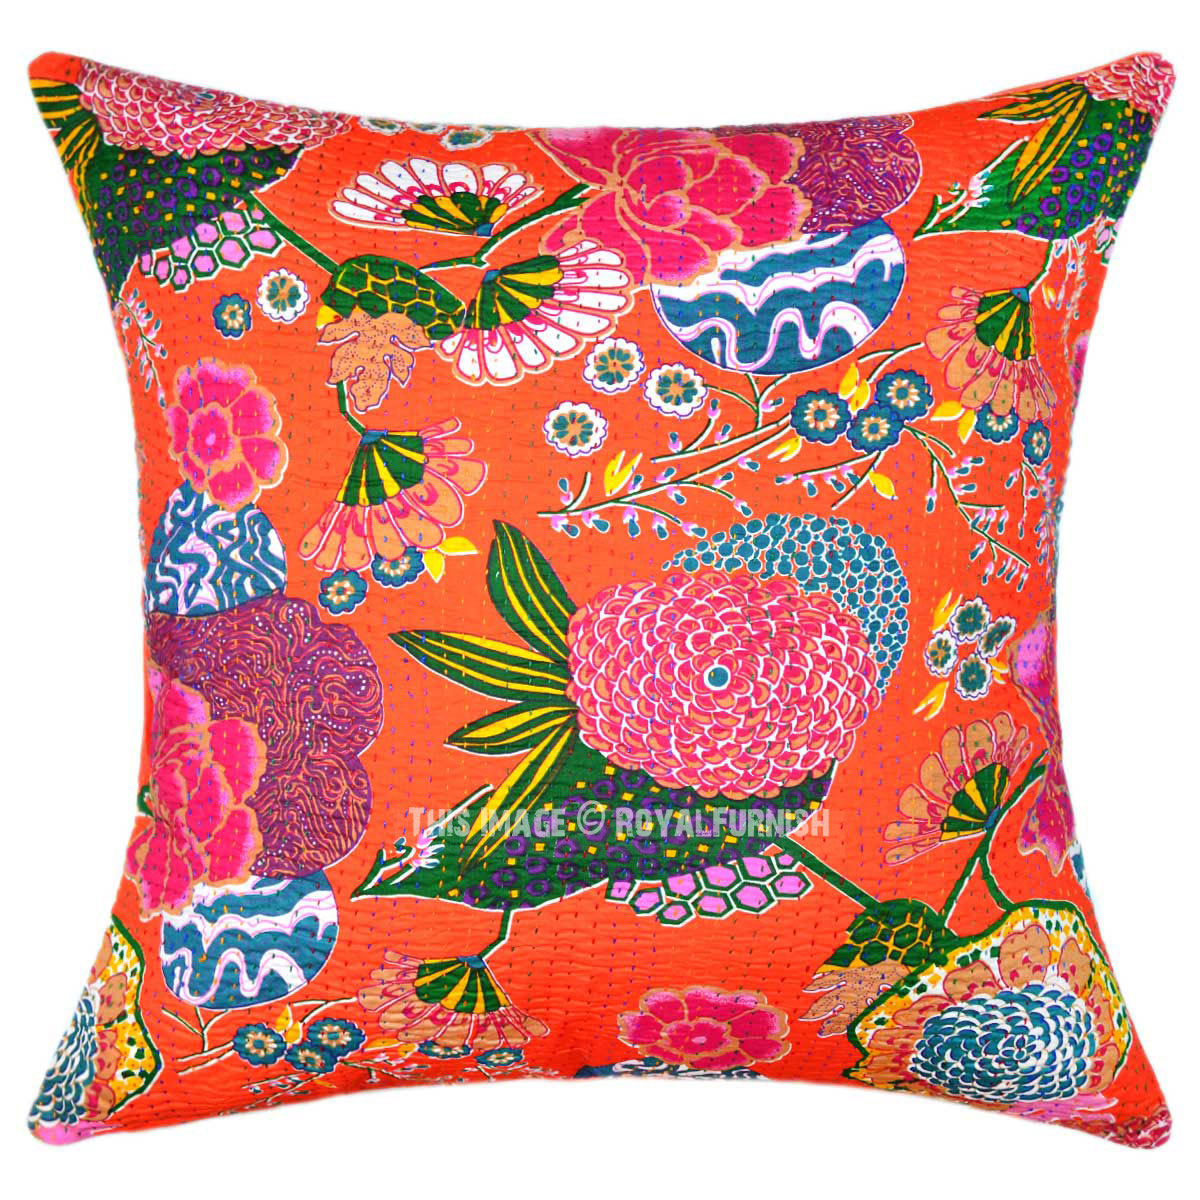 "Couch Pillows: 24"" Oversized Large Orange Tropical Kantha Sofa Couch"